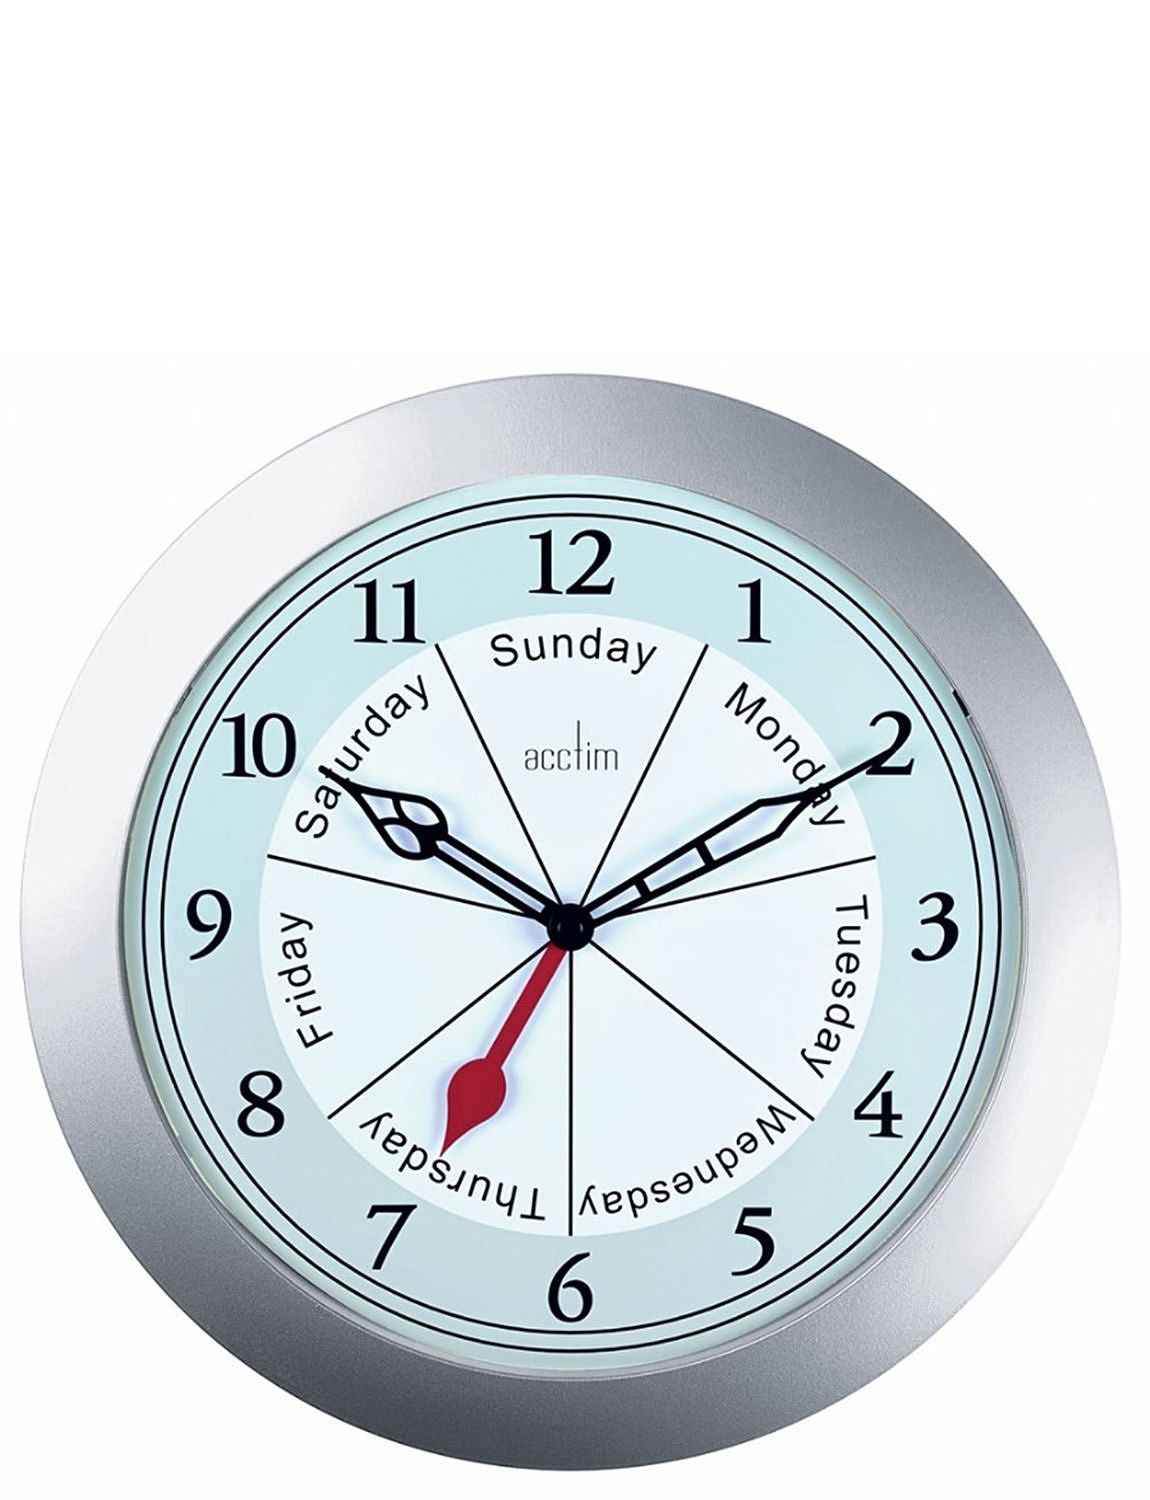 Day Of The Week Wall Clock Home Clocks